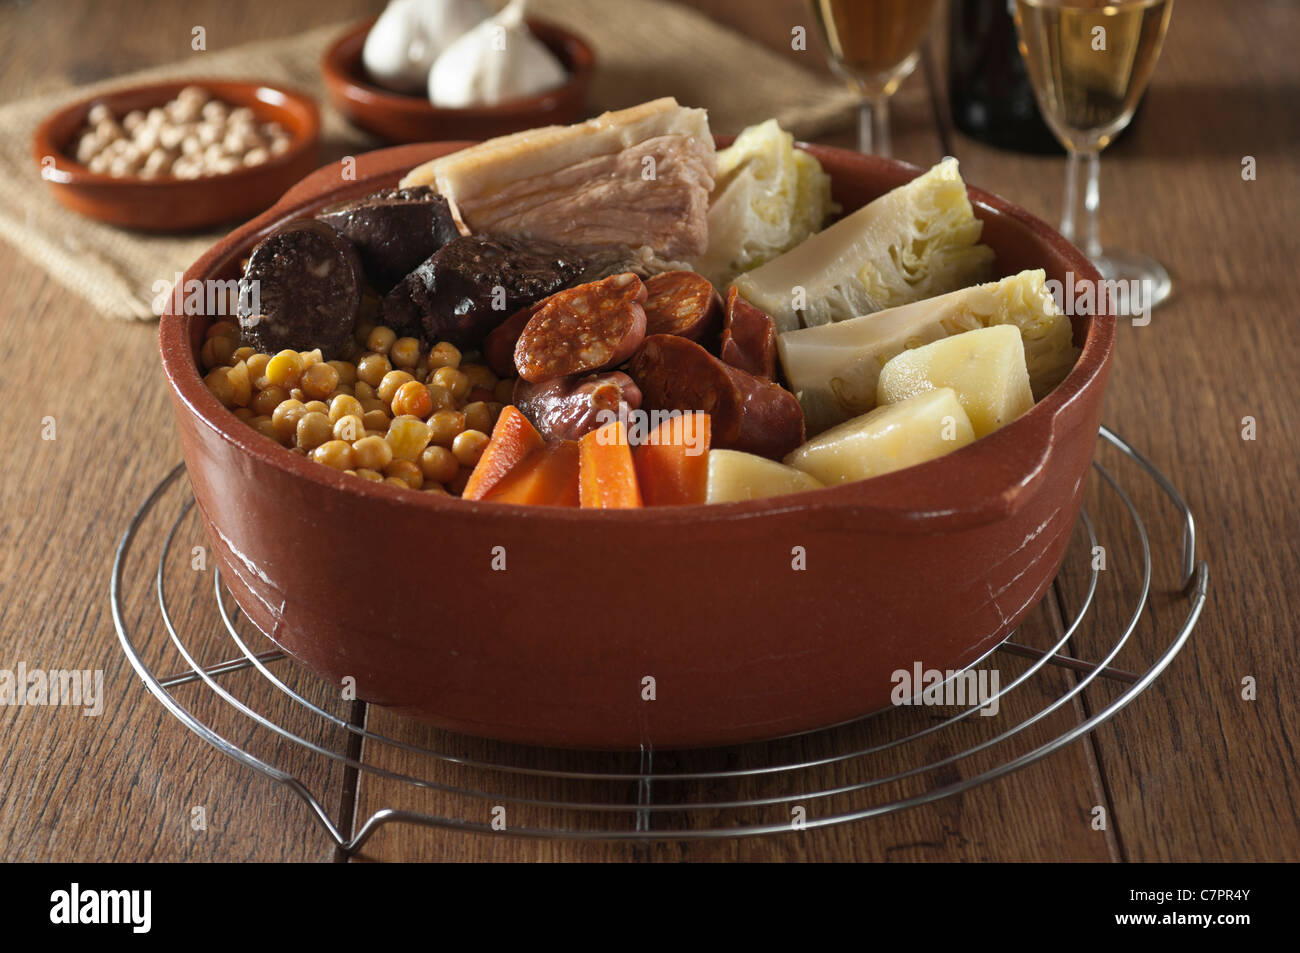 Cocido Espanol. Spanish meat and vegetable stew - Stock Image